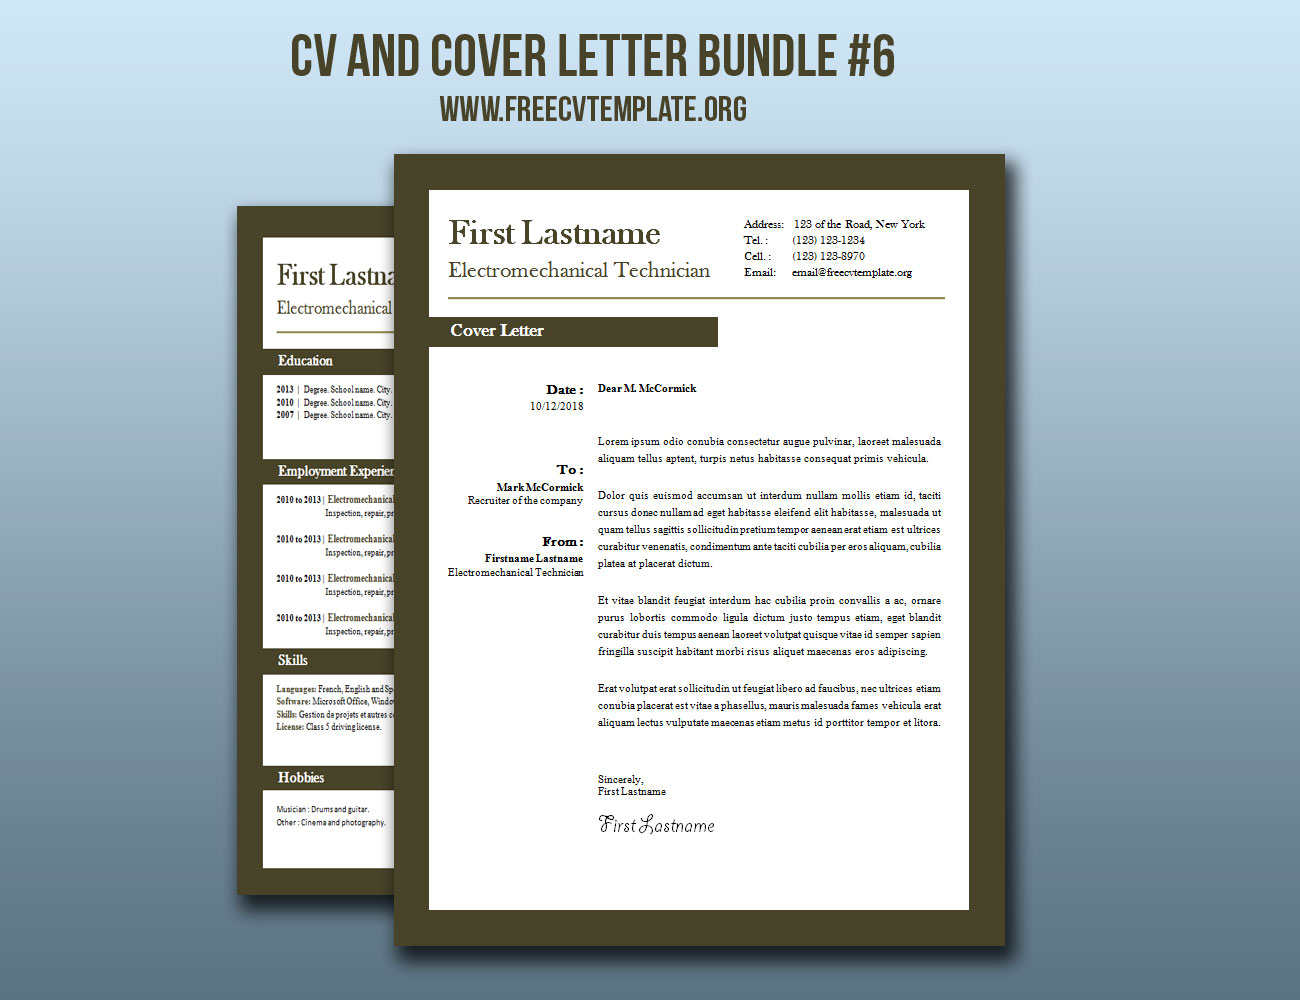 CV and Cover Letter Bundle #6